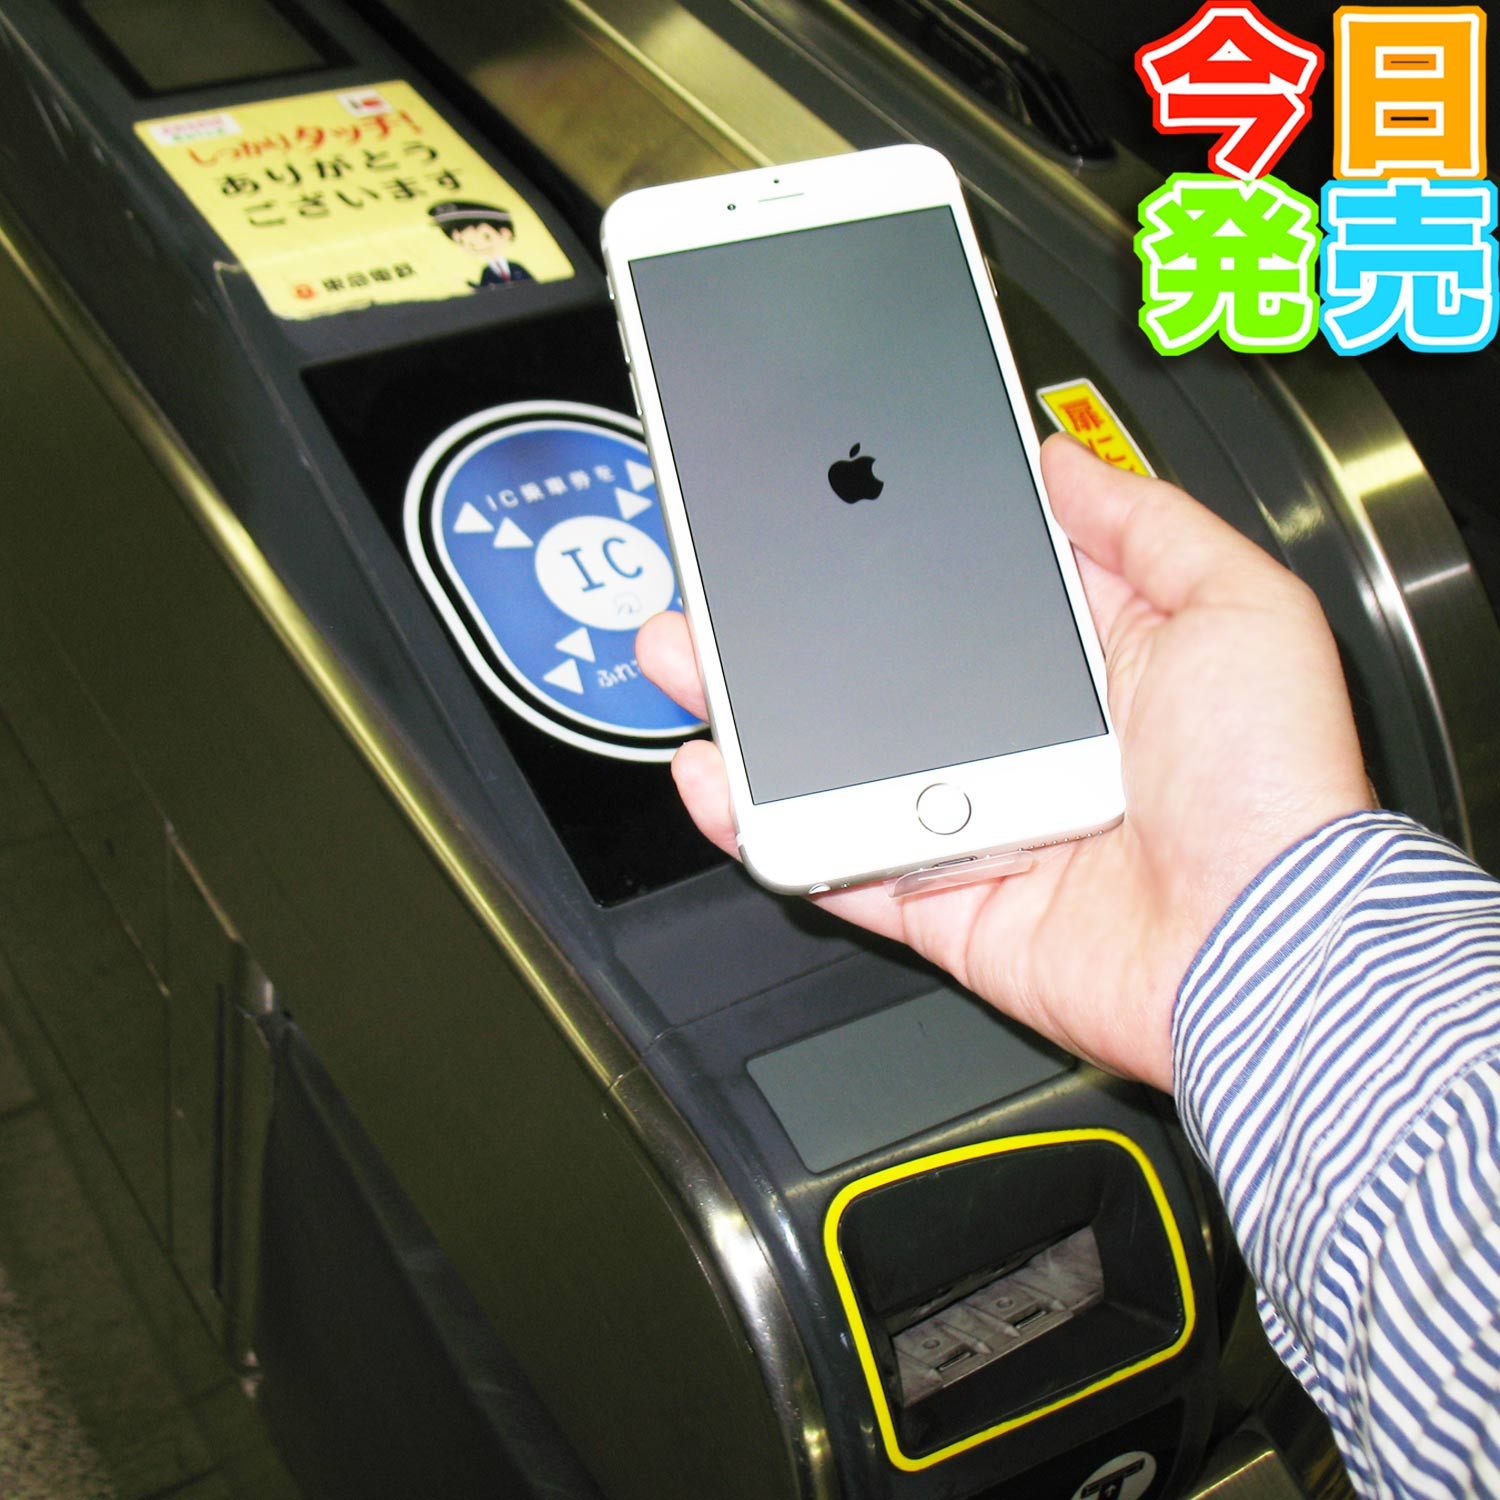 『iPhone6 Plus』と『改札』